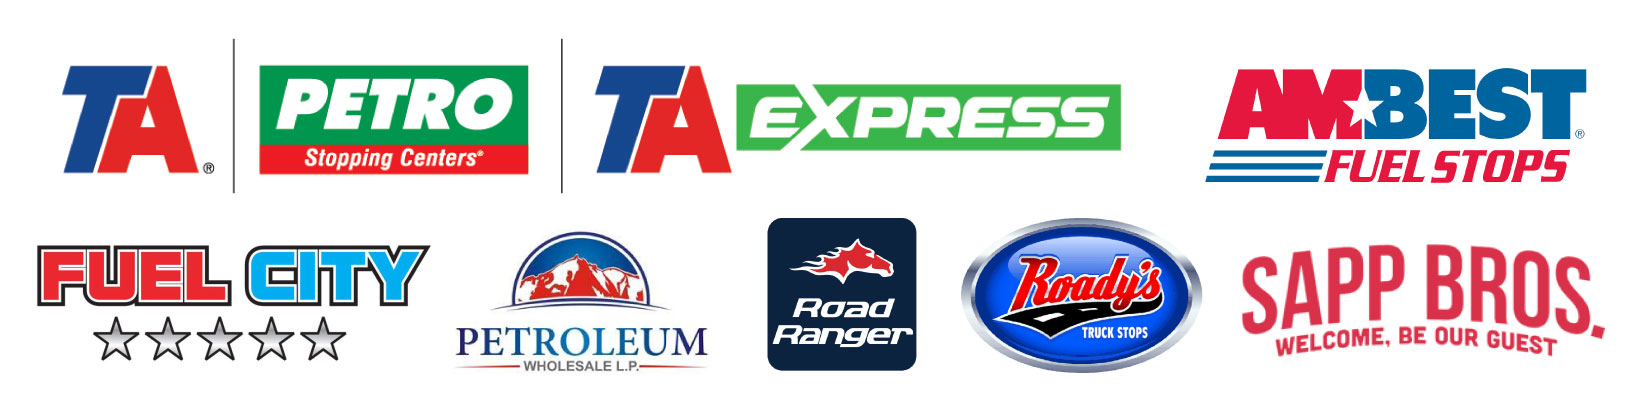 Fuel Card Truck Stop Partners | TA and Petro Stopping Centers, TA Express, Ambest Fuel Stops, Petroleum Wholesale L.P., Road Ranger, Roady's and Sapp Bros.